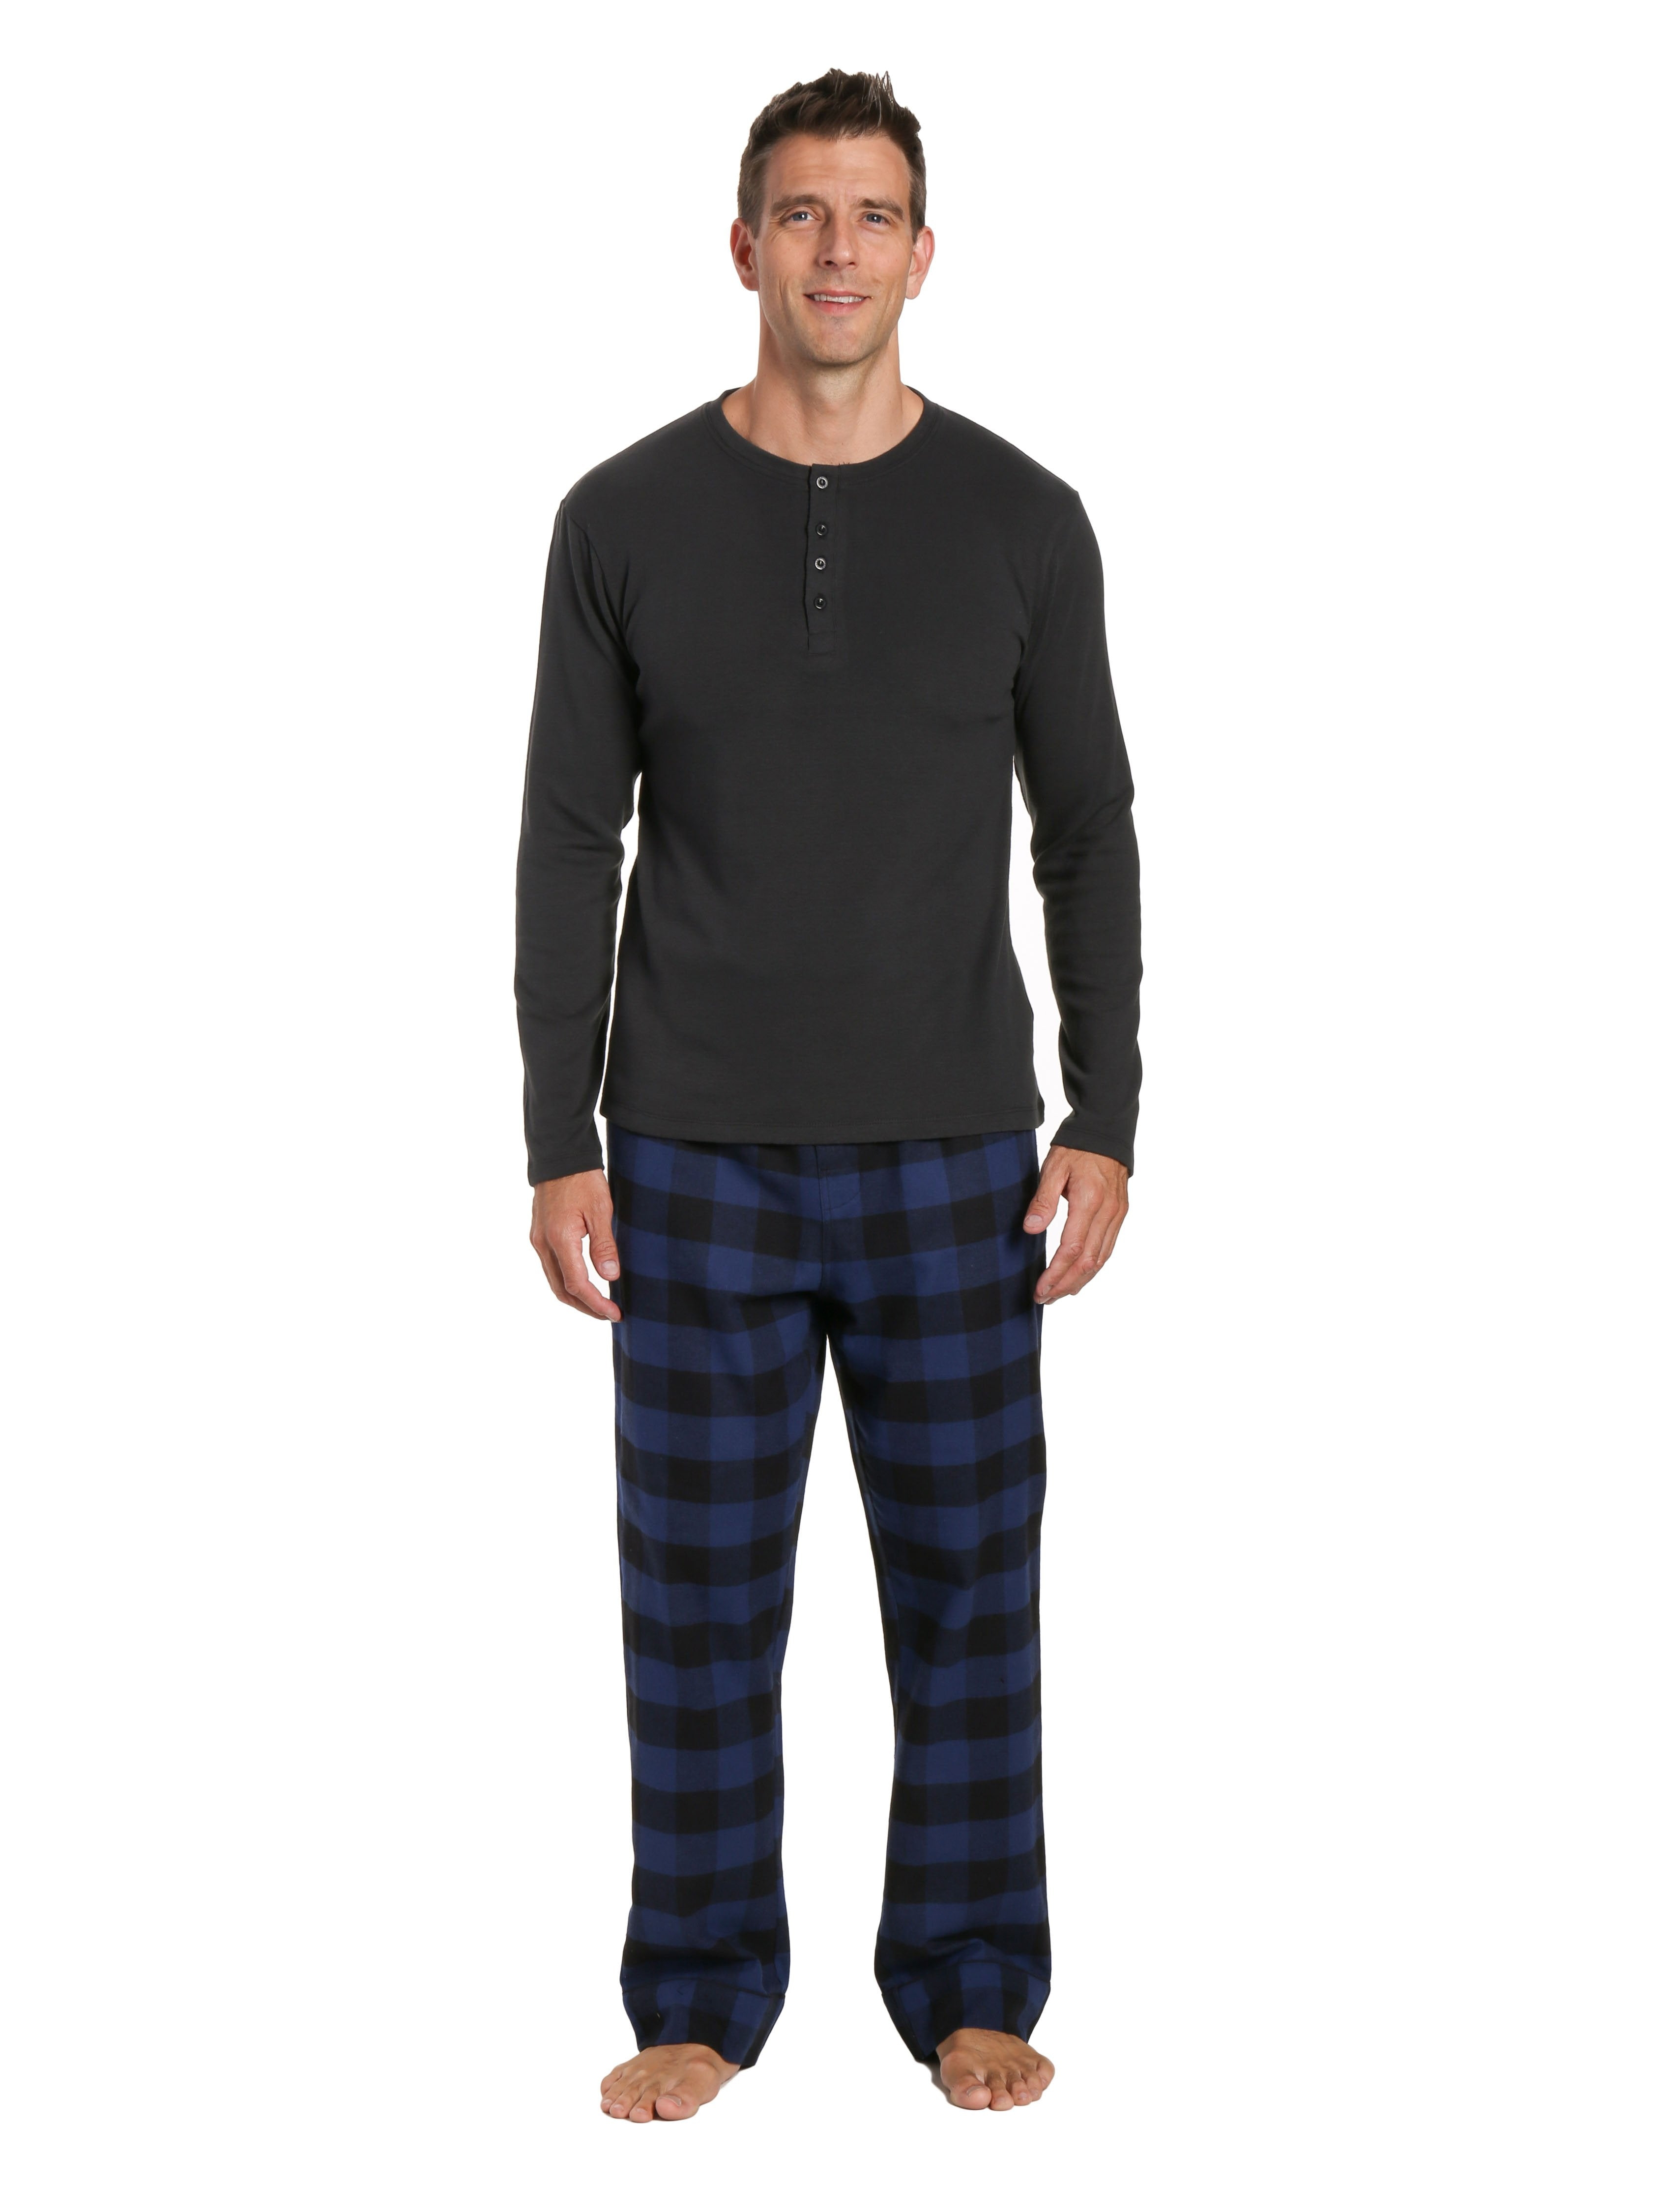 Mens Premium 100% Cotton Flannel Lounge Set - Gingham Checks - Black-Blue